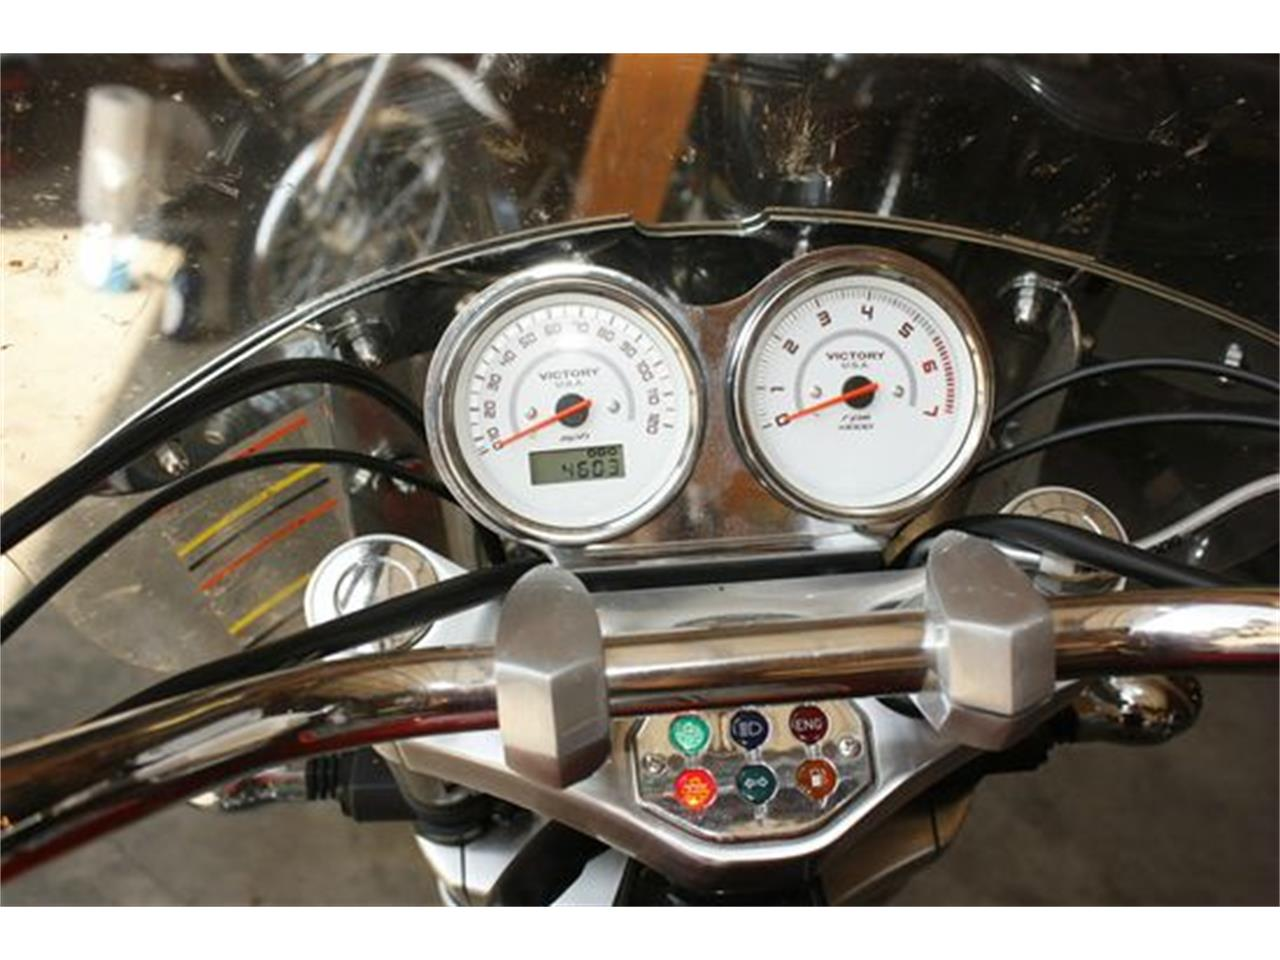 Large Picture of '03 Victory Vegas - $9,995.00 - LNZG